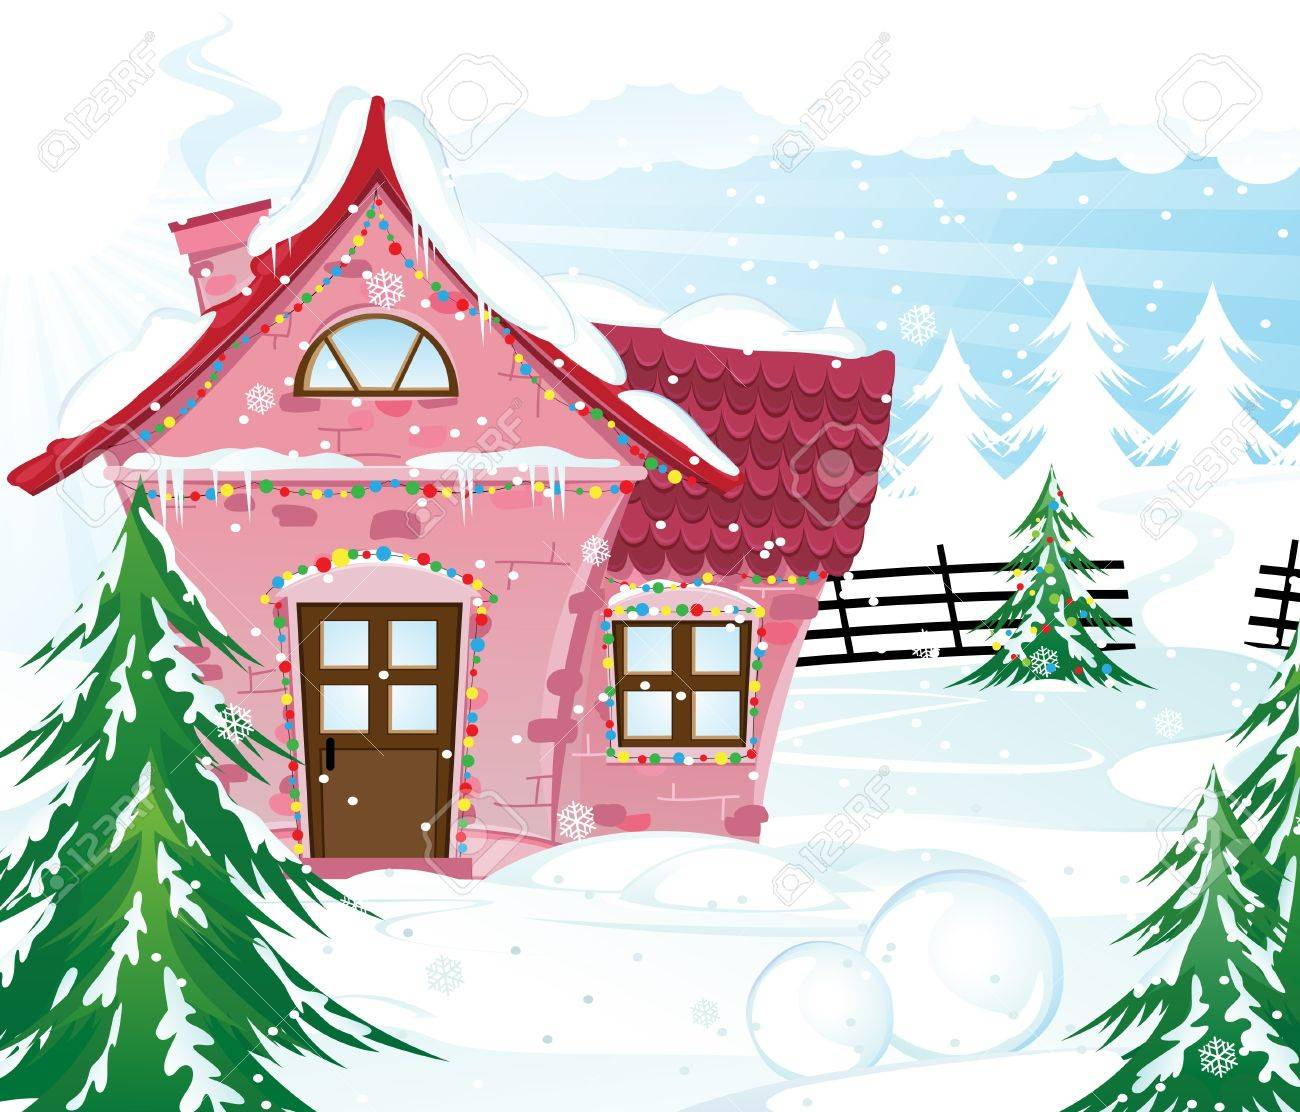 Pink house in a snow covered pine forest Winter landscape - 16704311